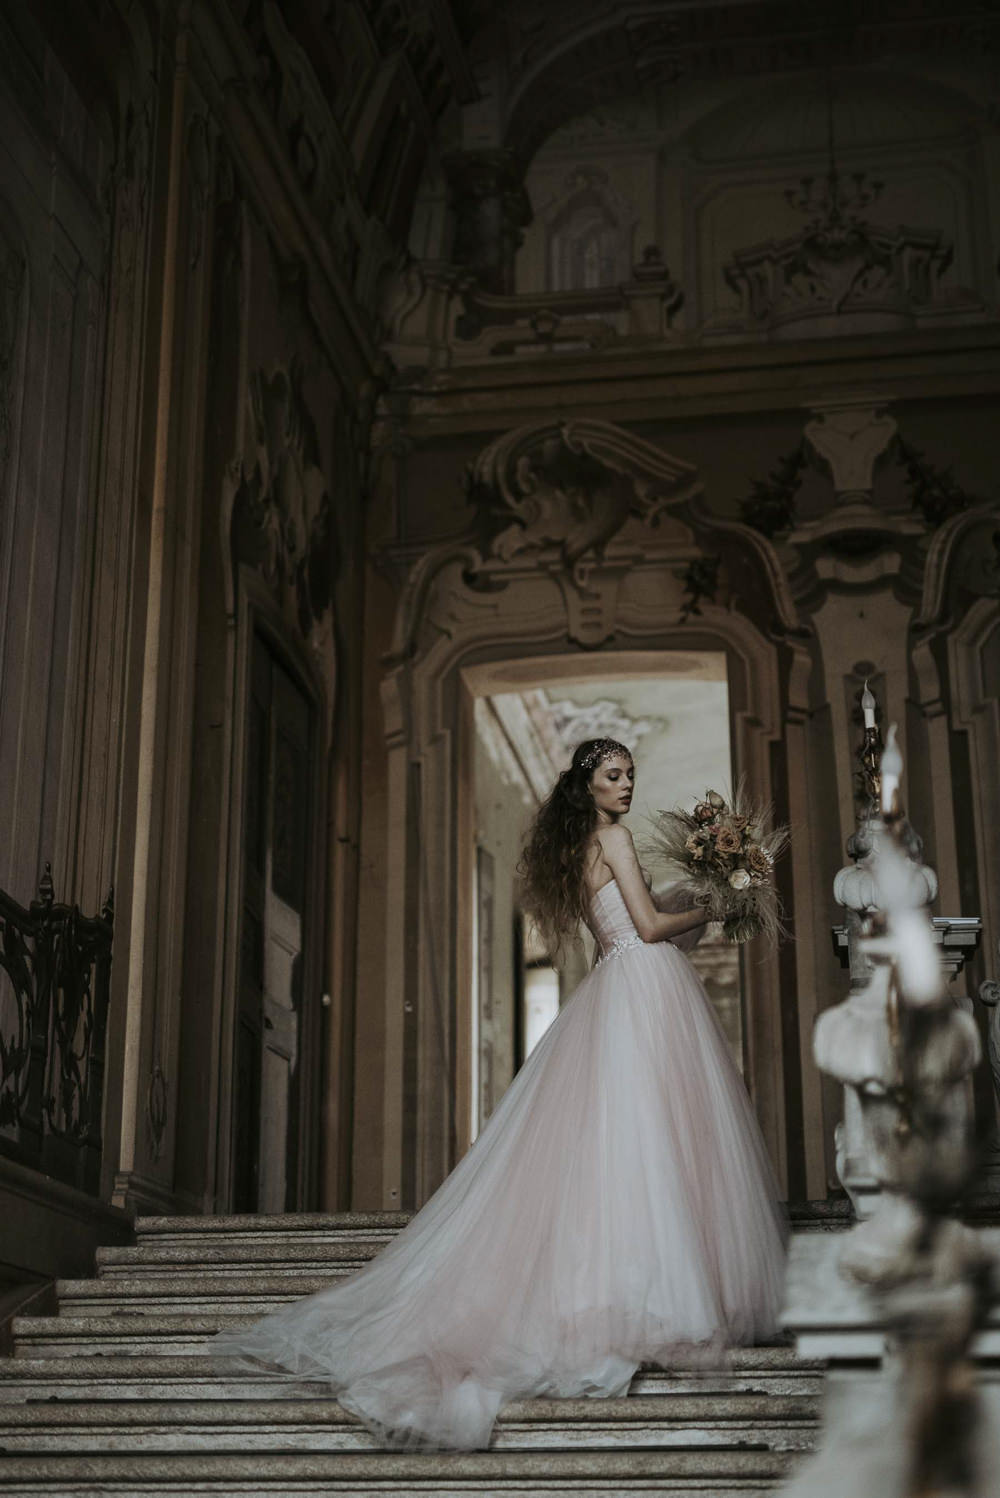 Dress Gown Bride Bridal Pink Tulle Sleeves Train Italy Elopement Ideas Gradisca Portento Fotografica